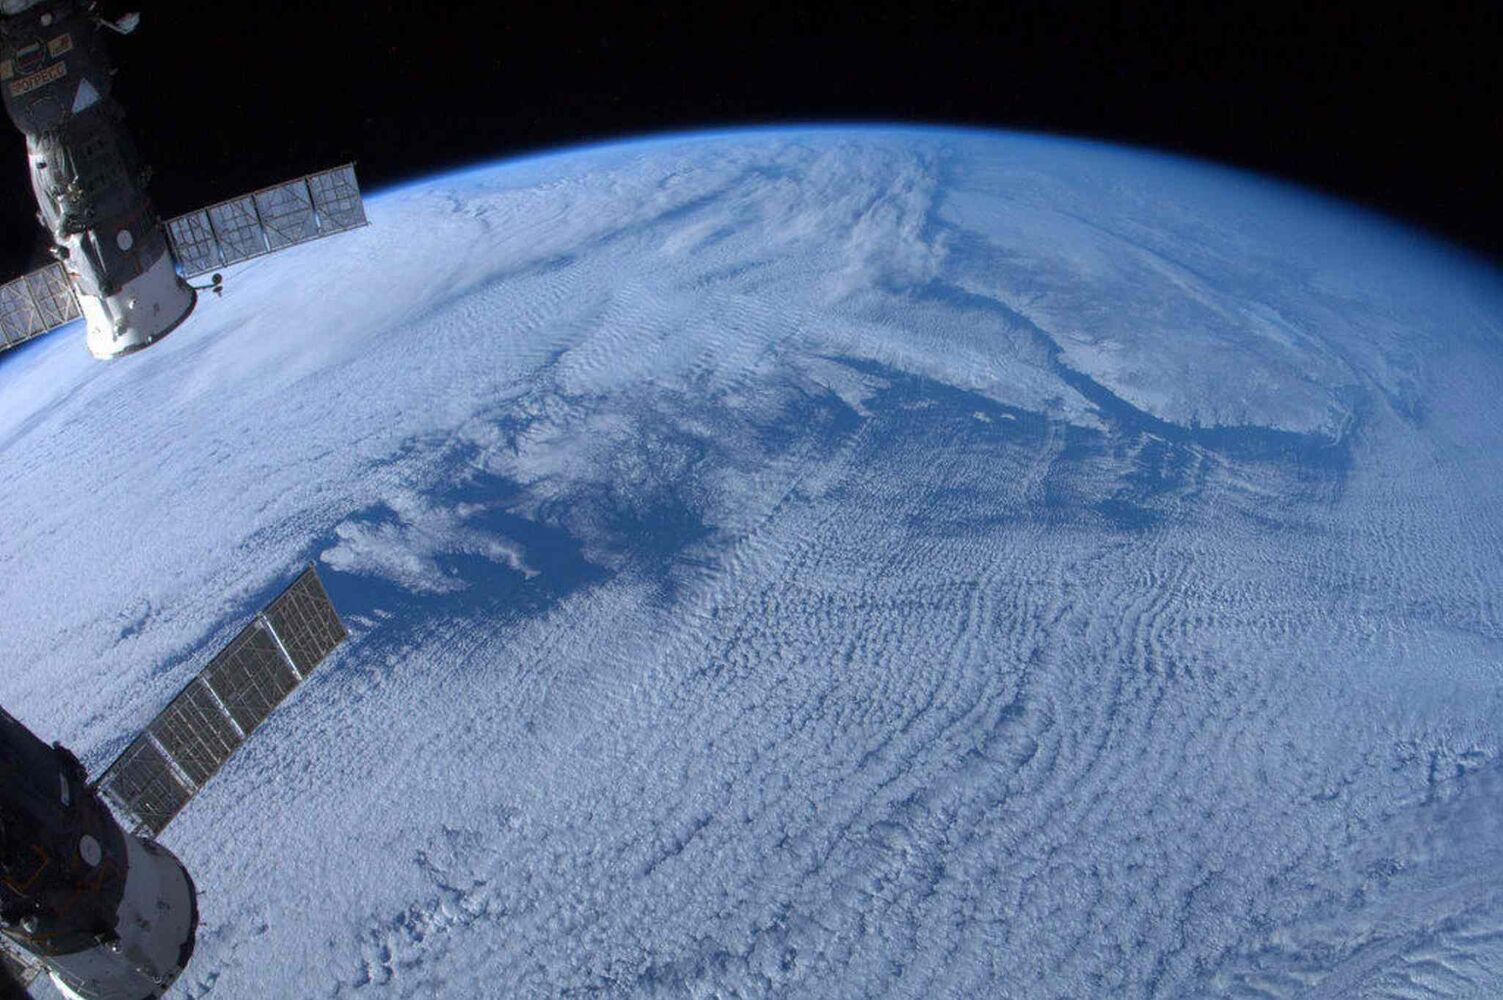 Newfoundland and Labrador, shot without a zoom lens, is shown in a photo posted on Twitter on Jan. 7, 2013 by Canadian astronaut Chris Hadfield. THE CANADIAN PRESS/Chris Hadfield, NASA, via Twitter (Chris Hadfield / NASA / The Canadian Press archives)